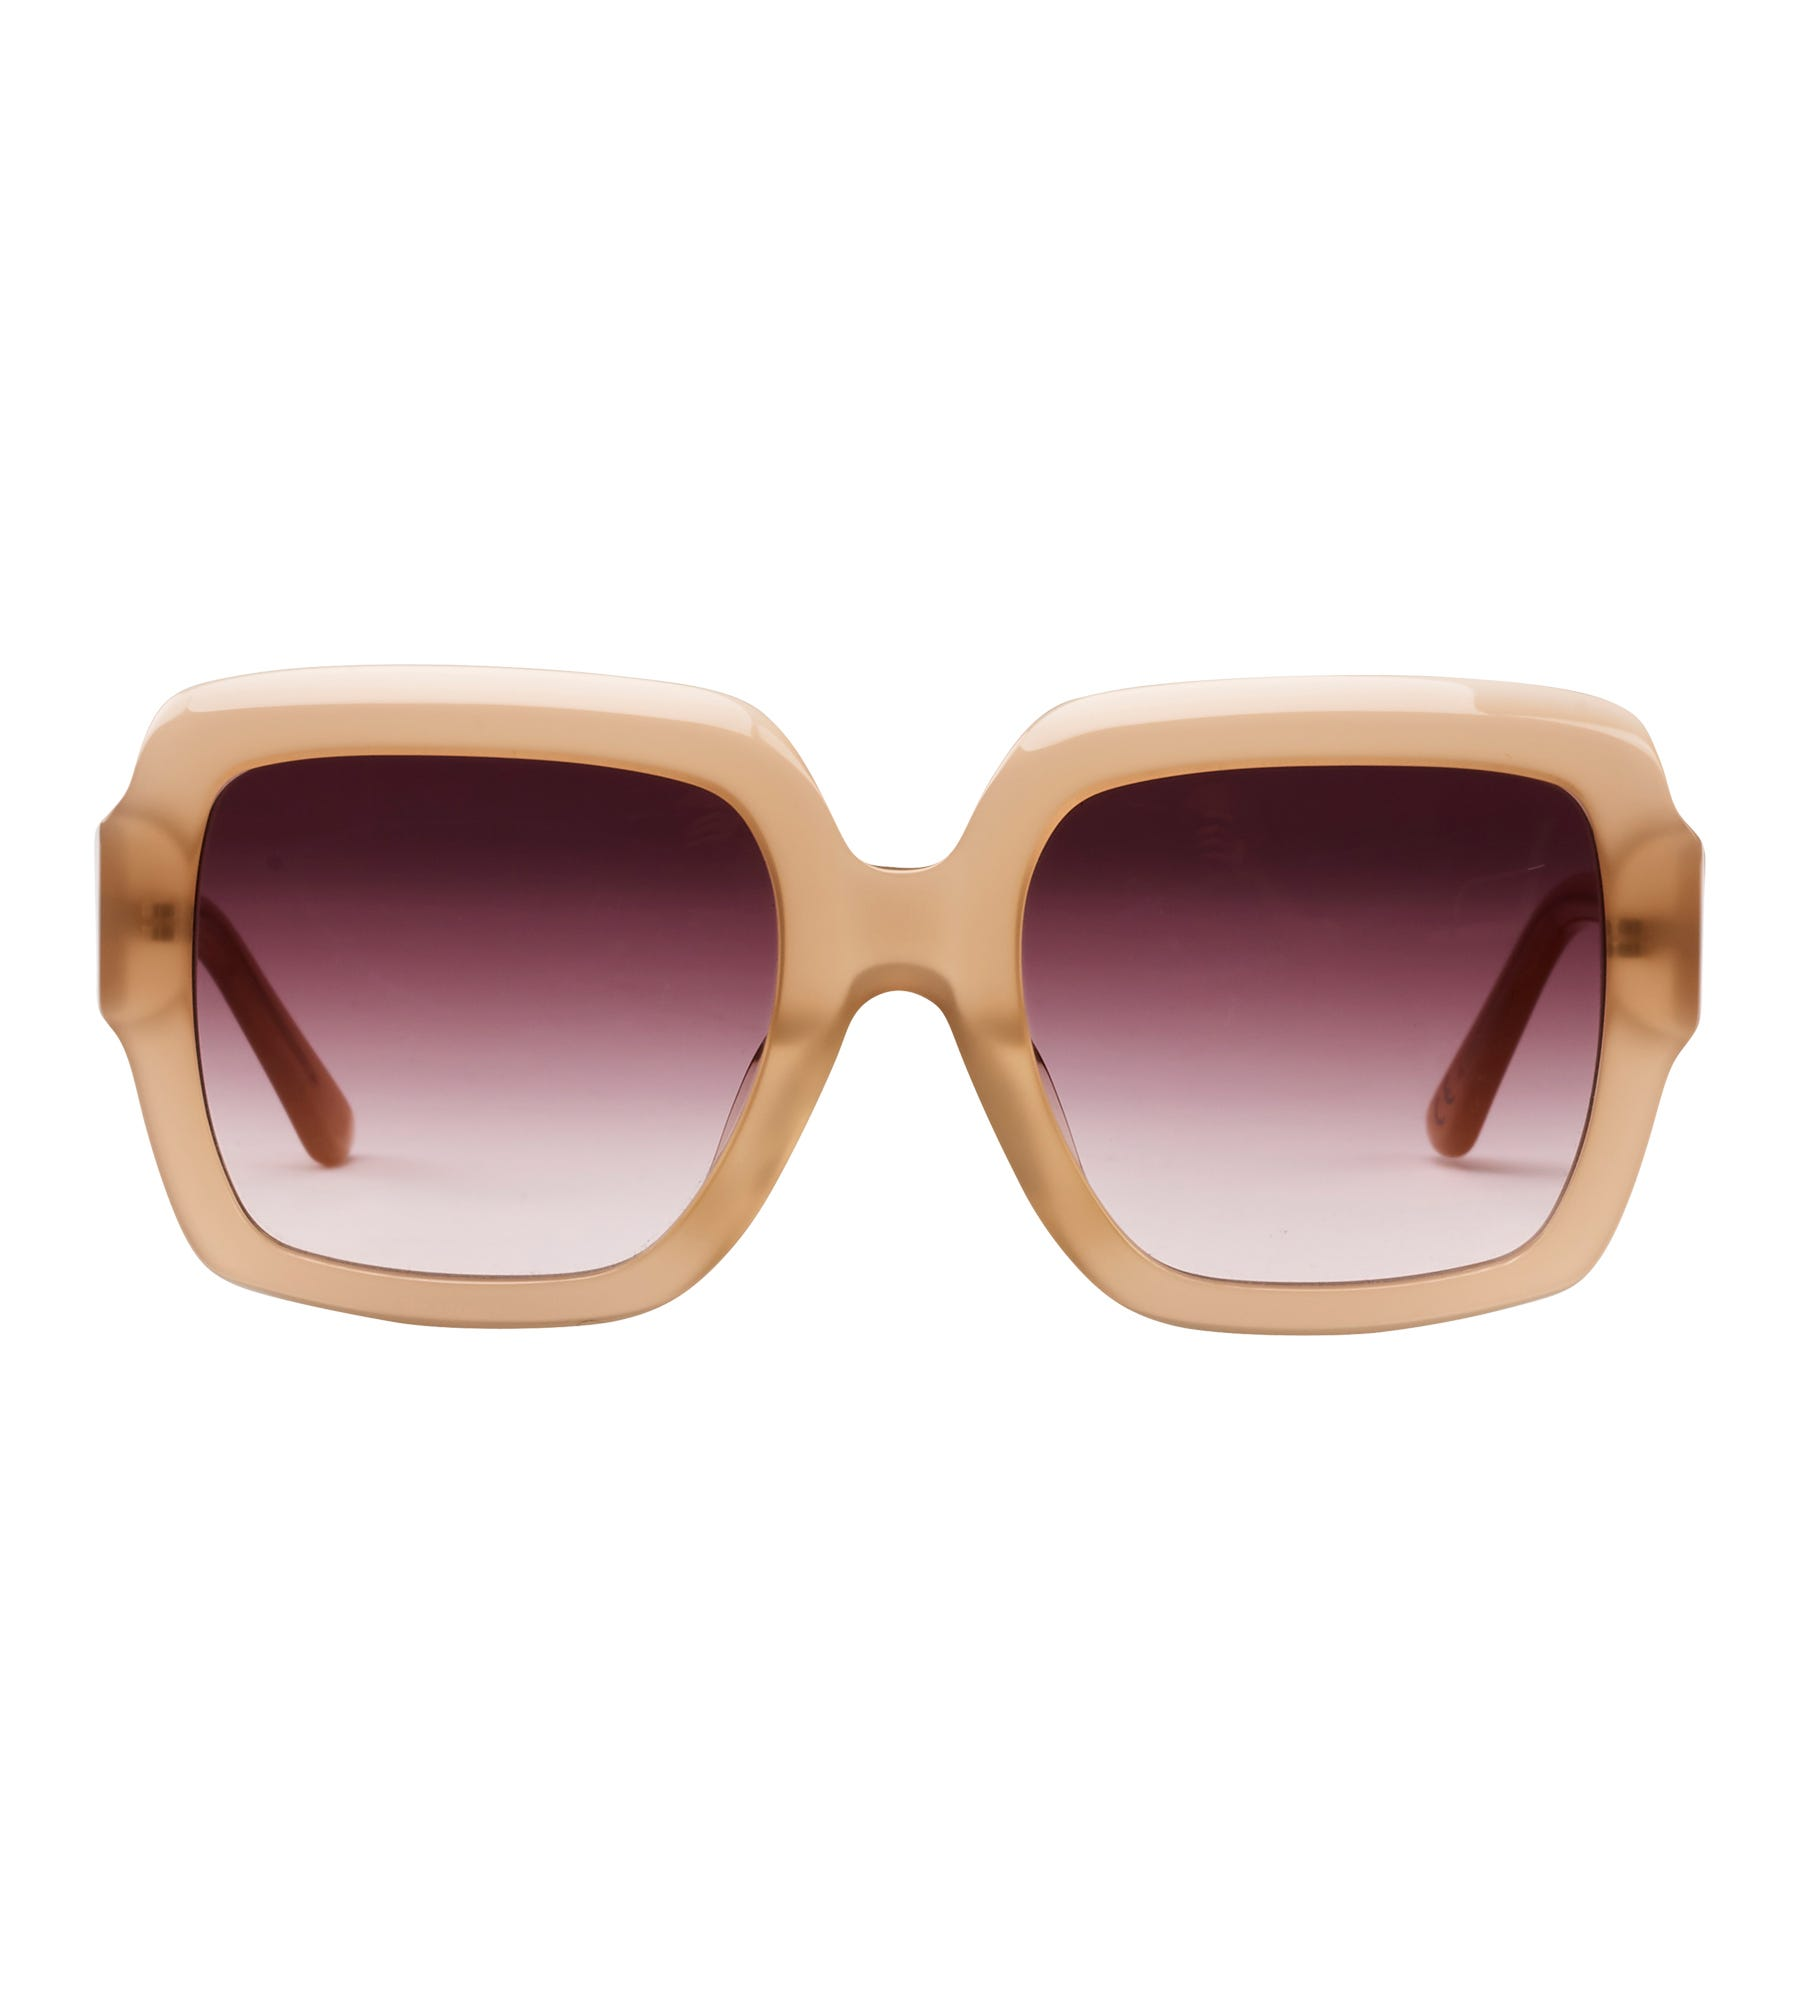 An image of Prism Sunglasses